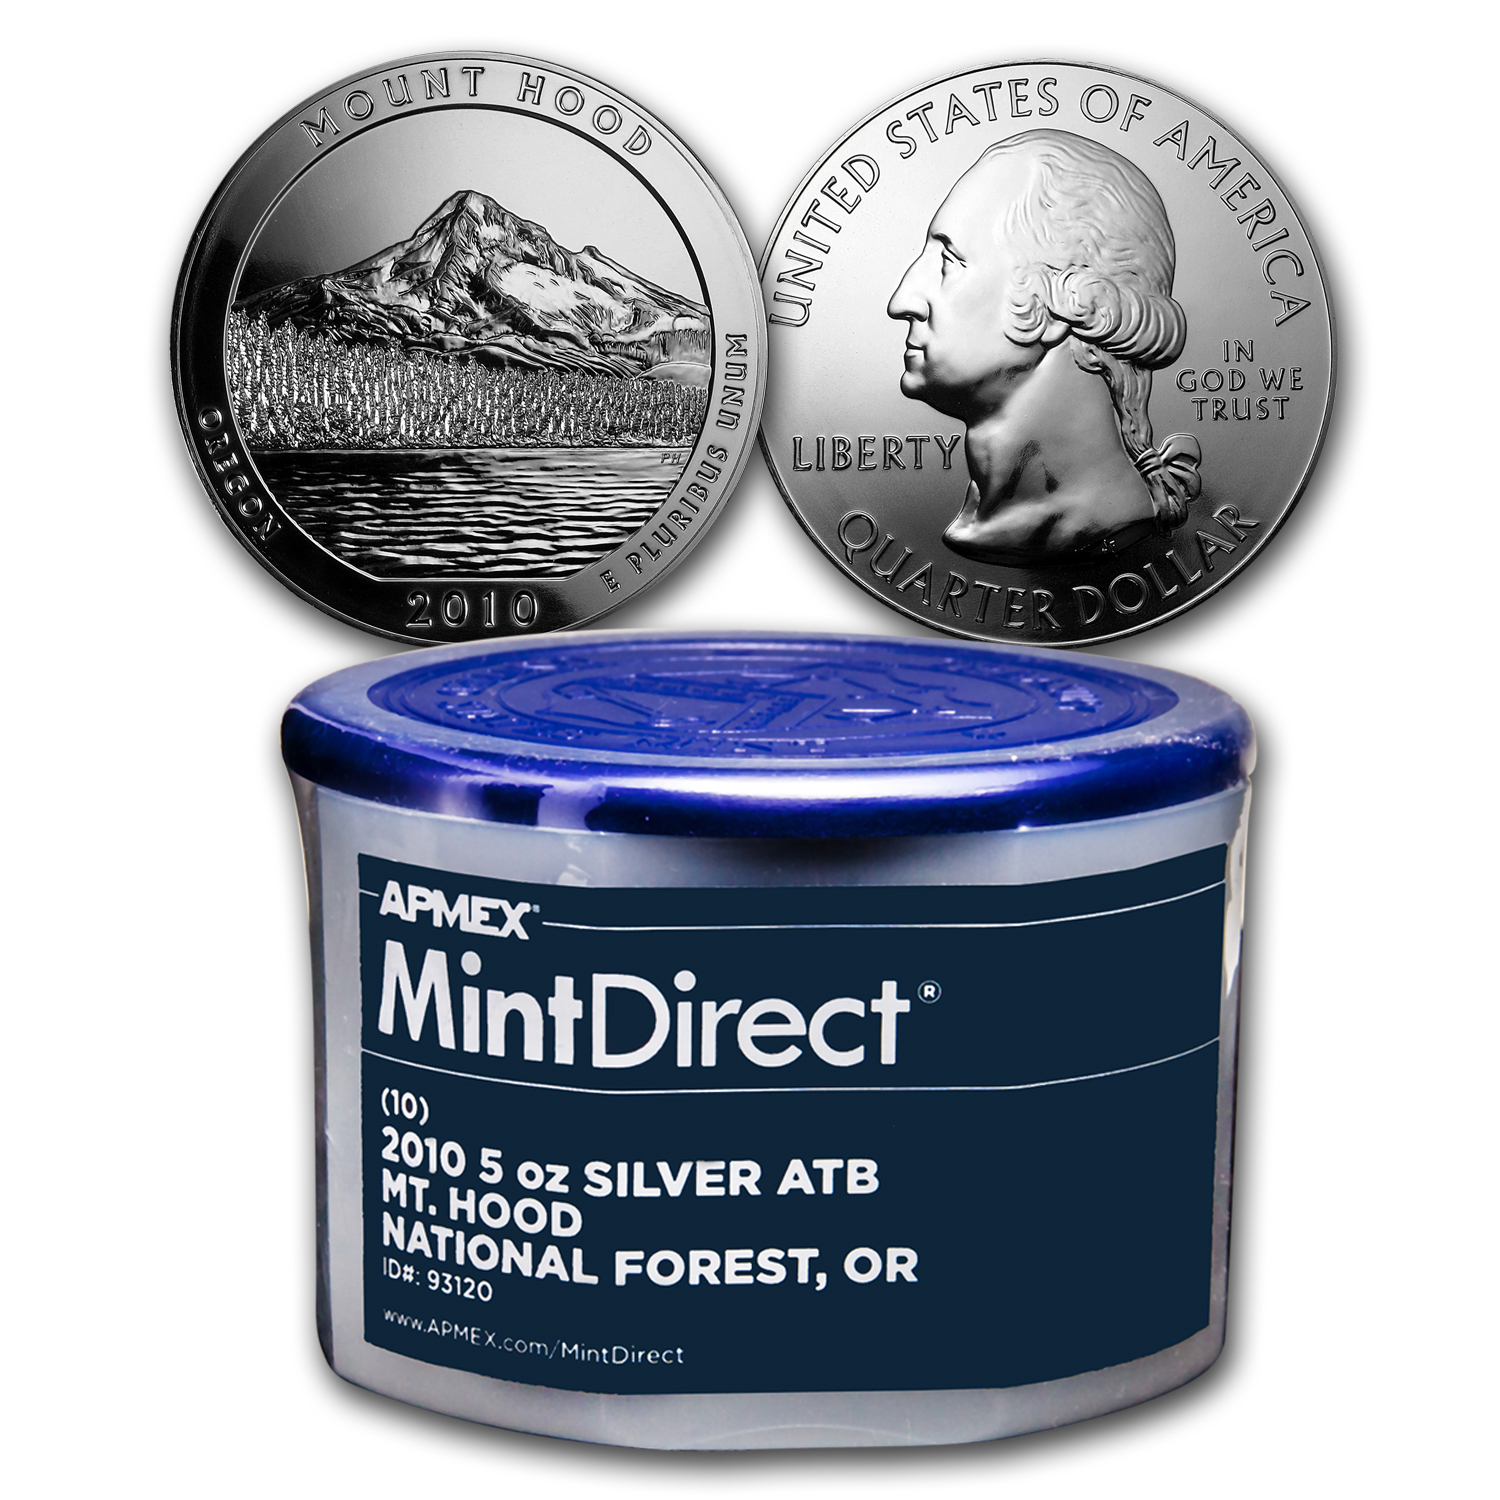 2010 5 oz Silver ATB Mount Hood (10-Coin MintDirect® Tube)